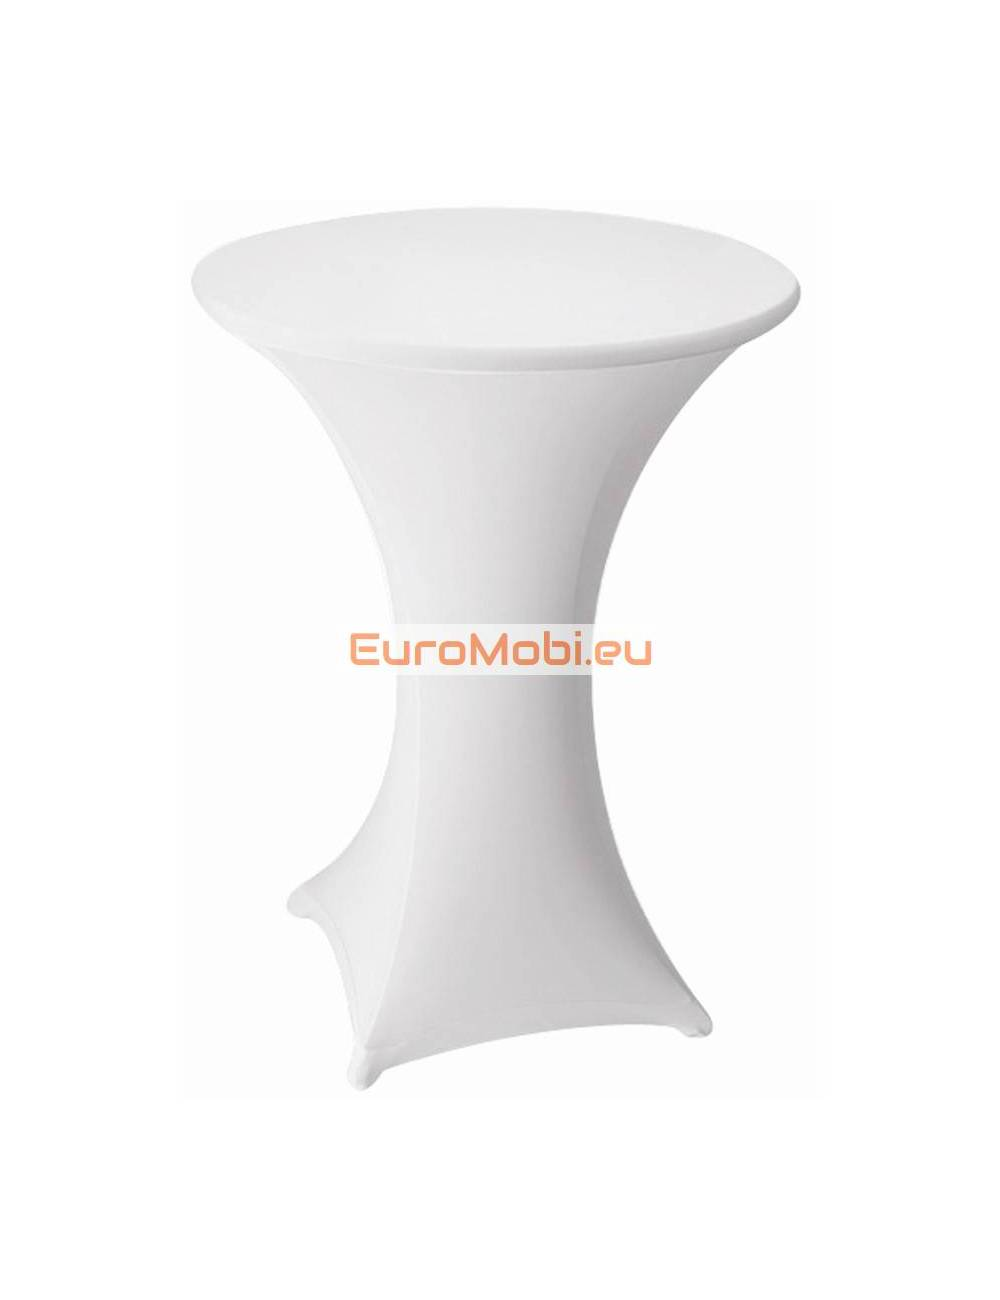 Cover and top stretch for standing table round white